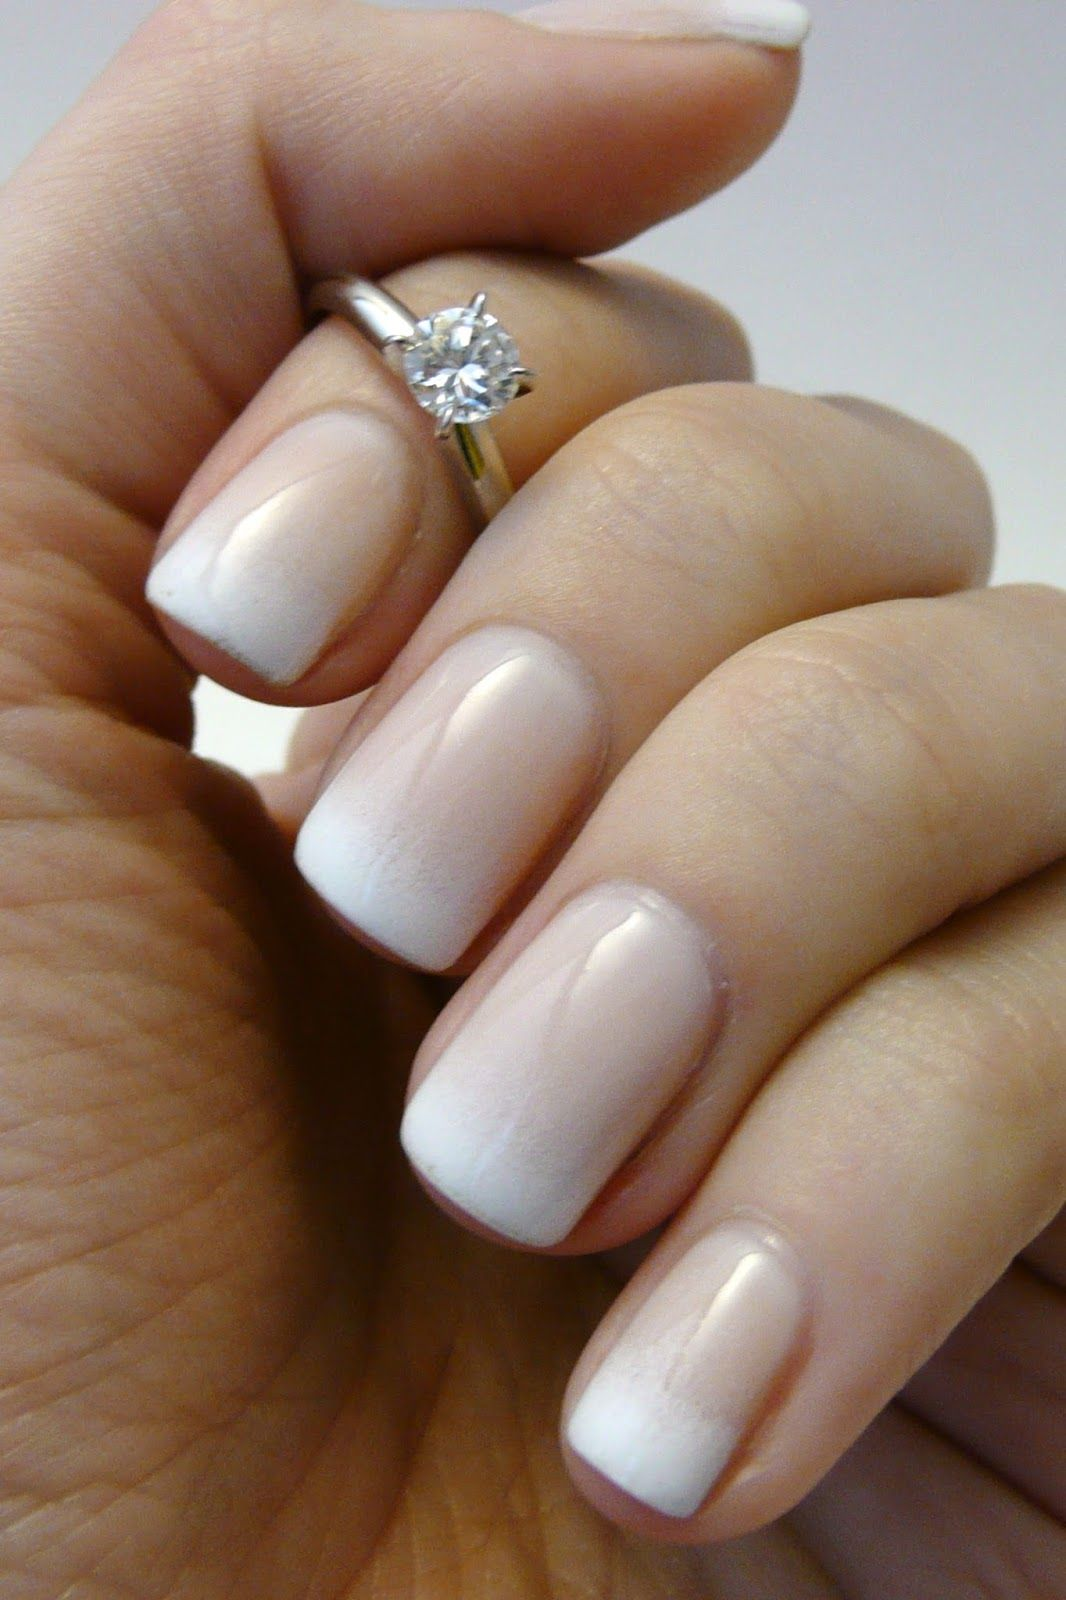 10 Incredibly Cute Ombre Nail Designs To Inspire You ...